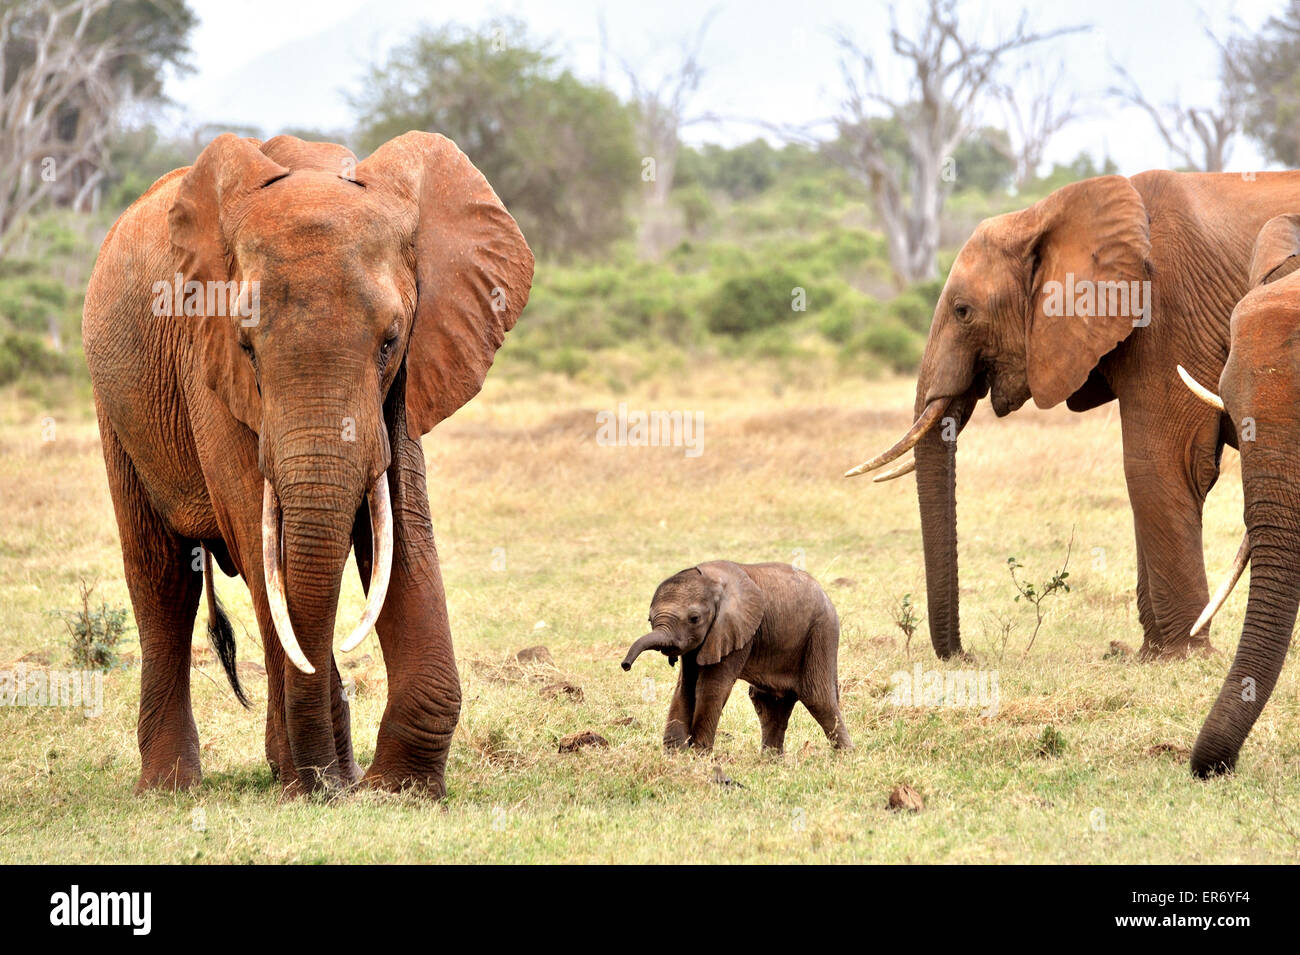 Very Young Elephant Baby playing around with its Family - Stock Image